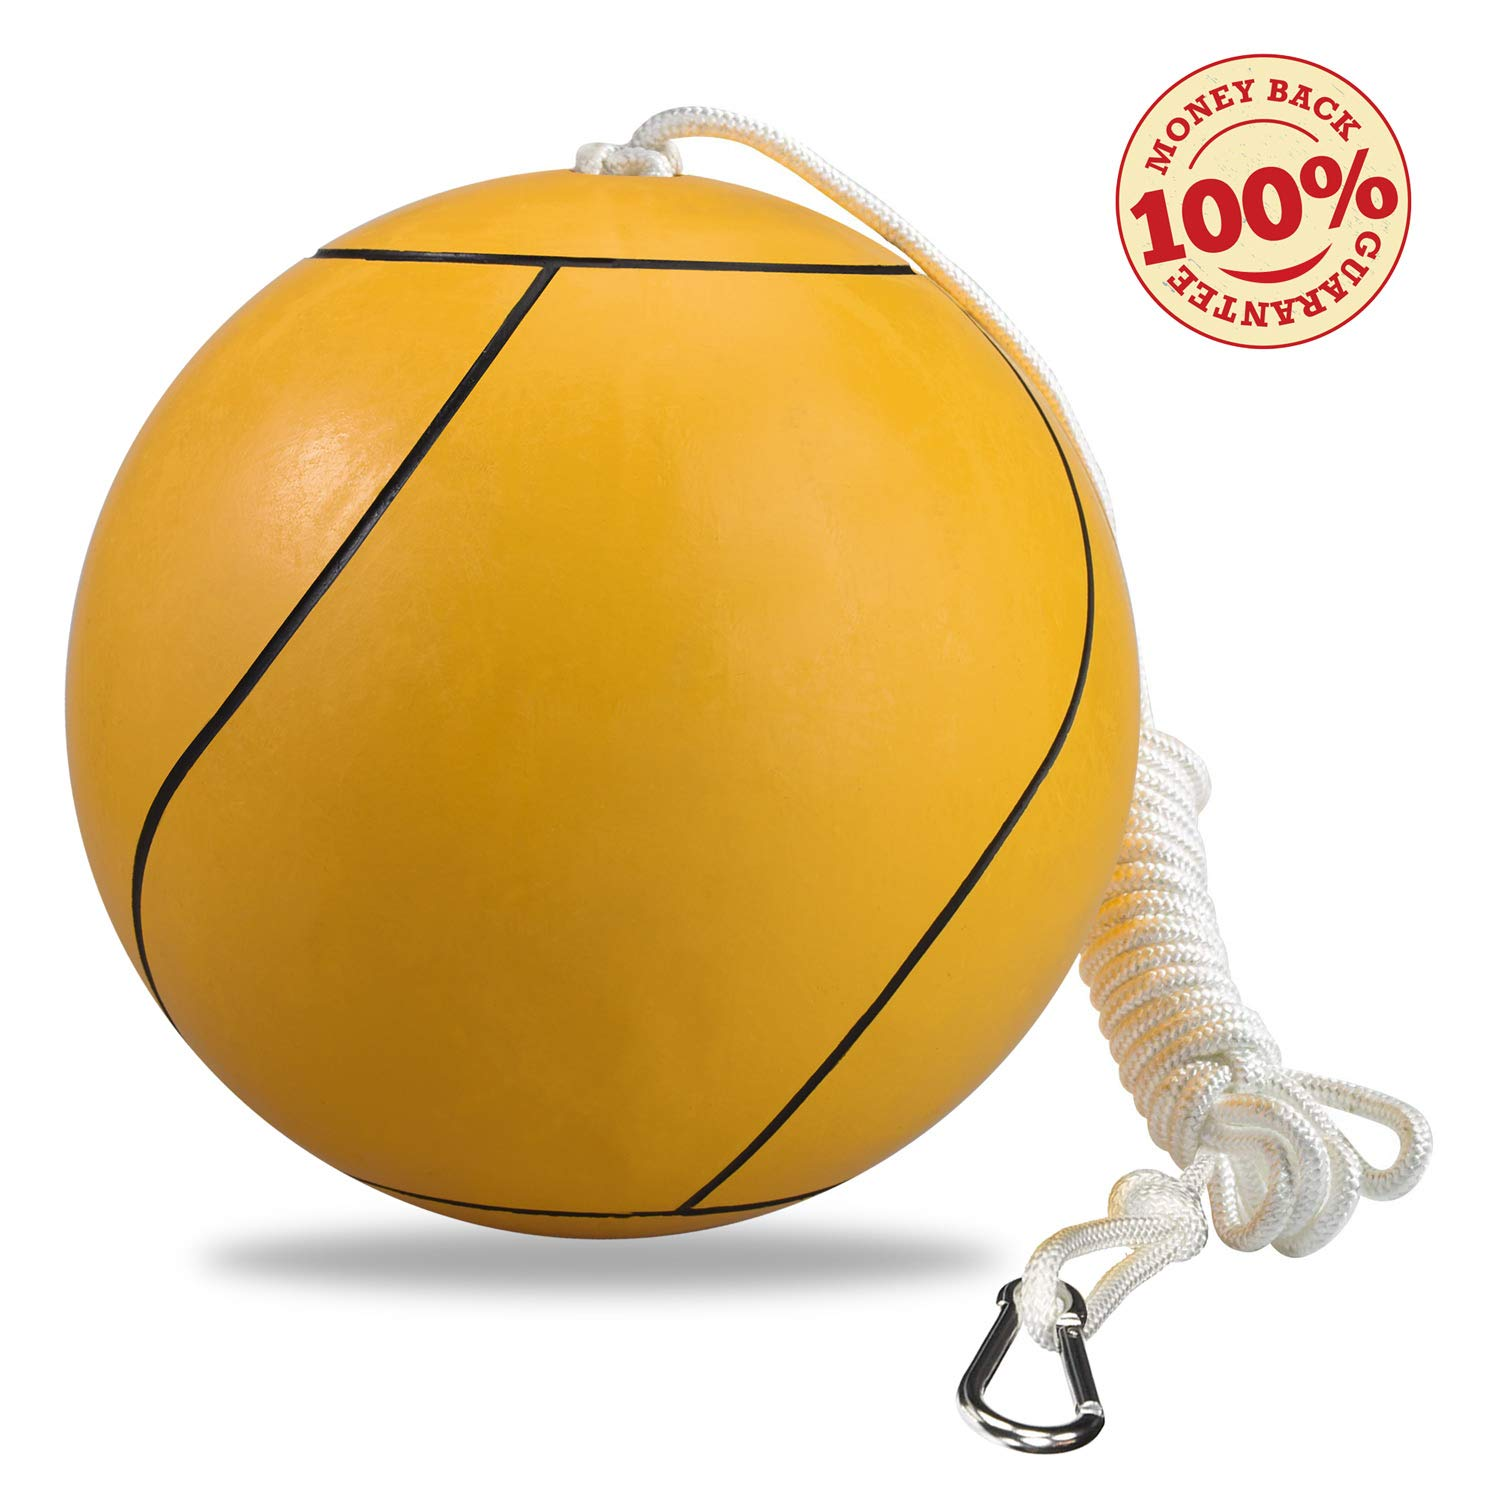 Mawelrate Tetherball Rope and Ball Set - Upgrade Your Volleyball Skills - Good for Spike Training - Portable Fun for The Park, Beach - Attach Swing Ball to Any Pole or Tree - 1pc by Mawelrate